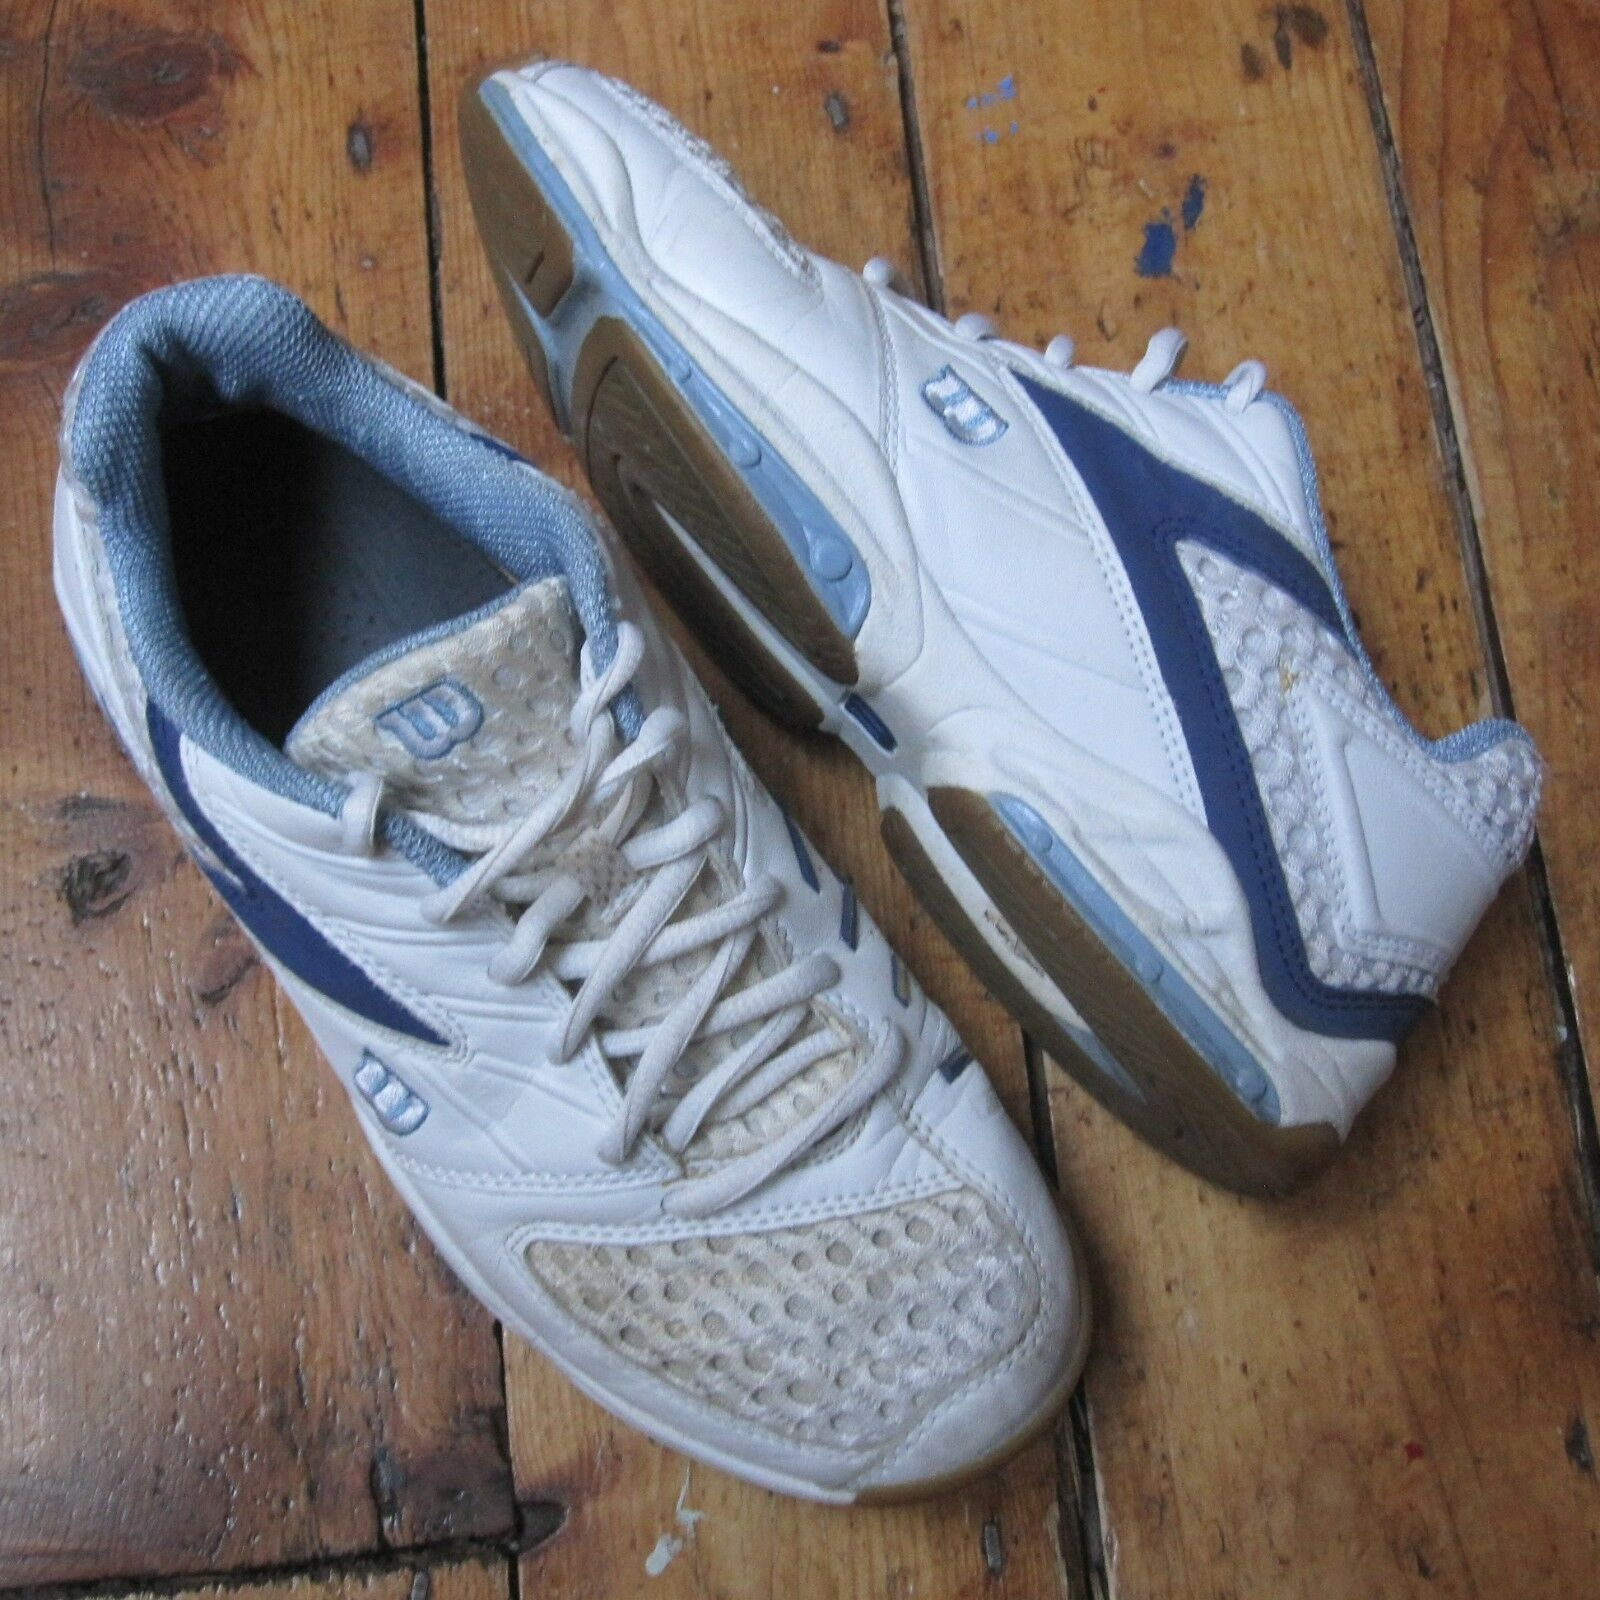 Wilson Size Vintage Tennis Shoes Trainers White Blue UK Size Wilson 6.5 Retro 90s? Unisex 278ca6